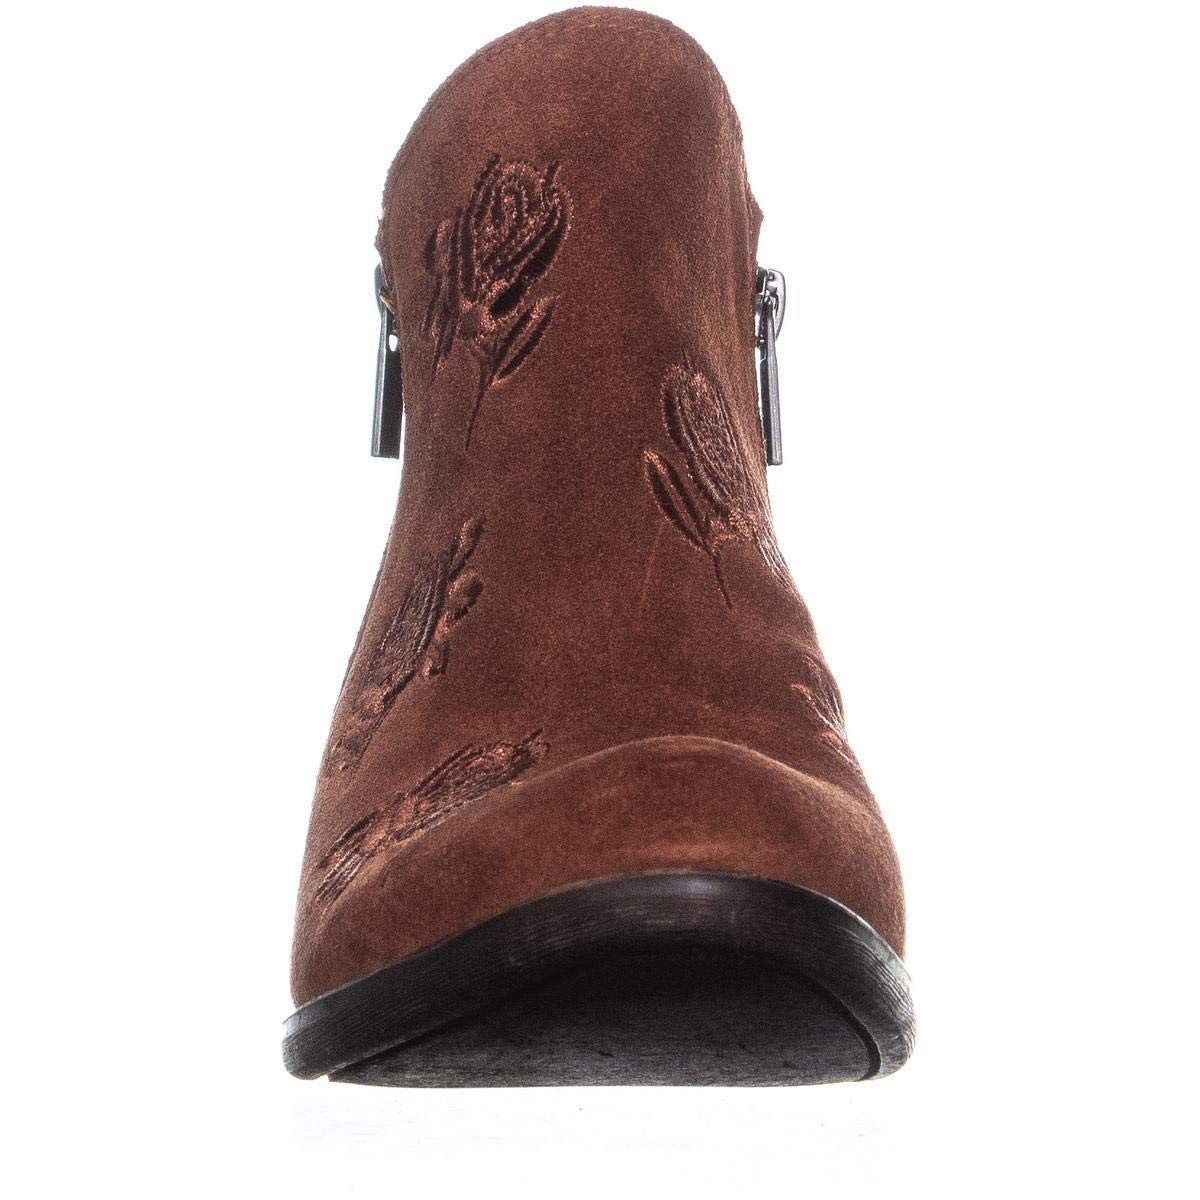 3584a113de00 Lucky Brand Womens Basel 5 Closed Toe Ankle Fashion Boots  Amazon.co.uk   Shoes   Bags